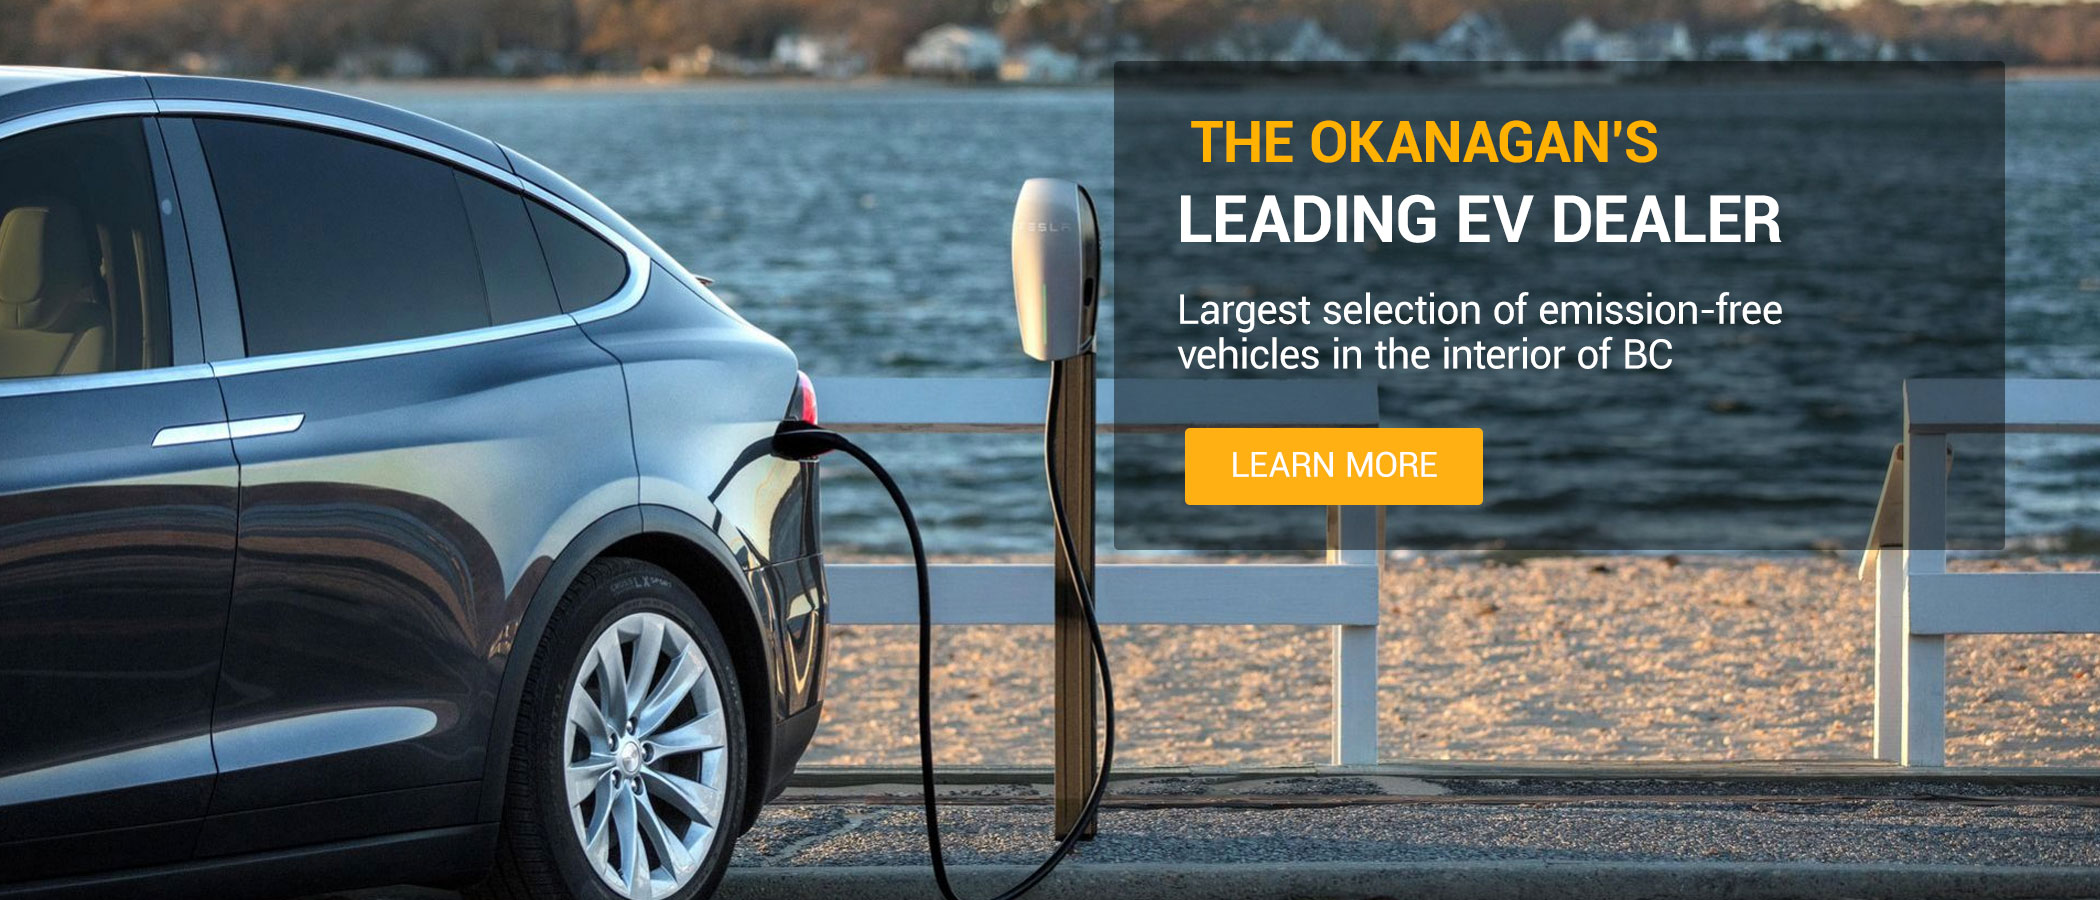 Okanagan's leading ev dealer